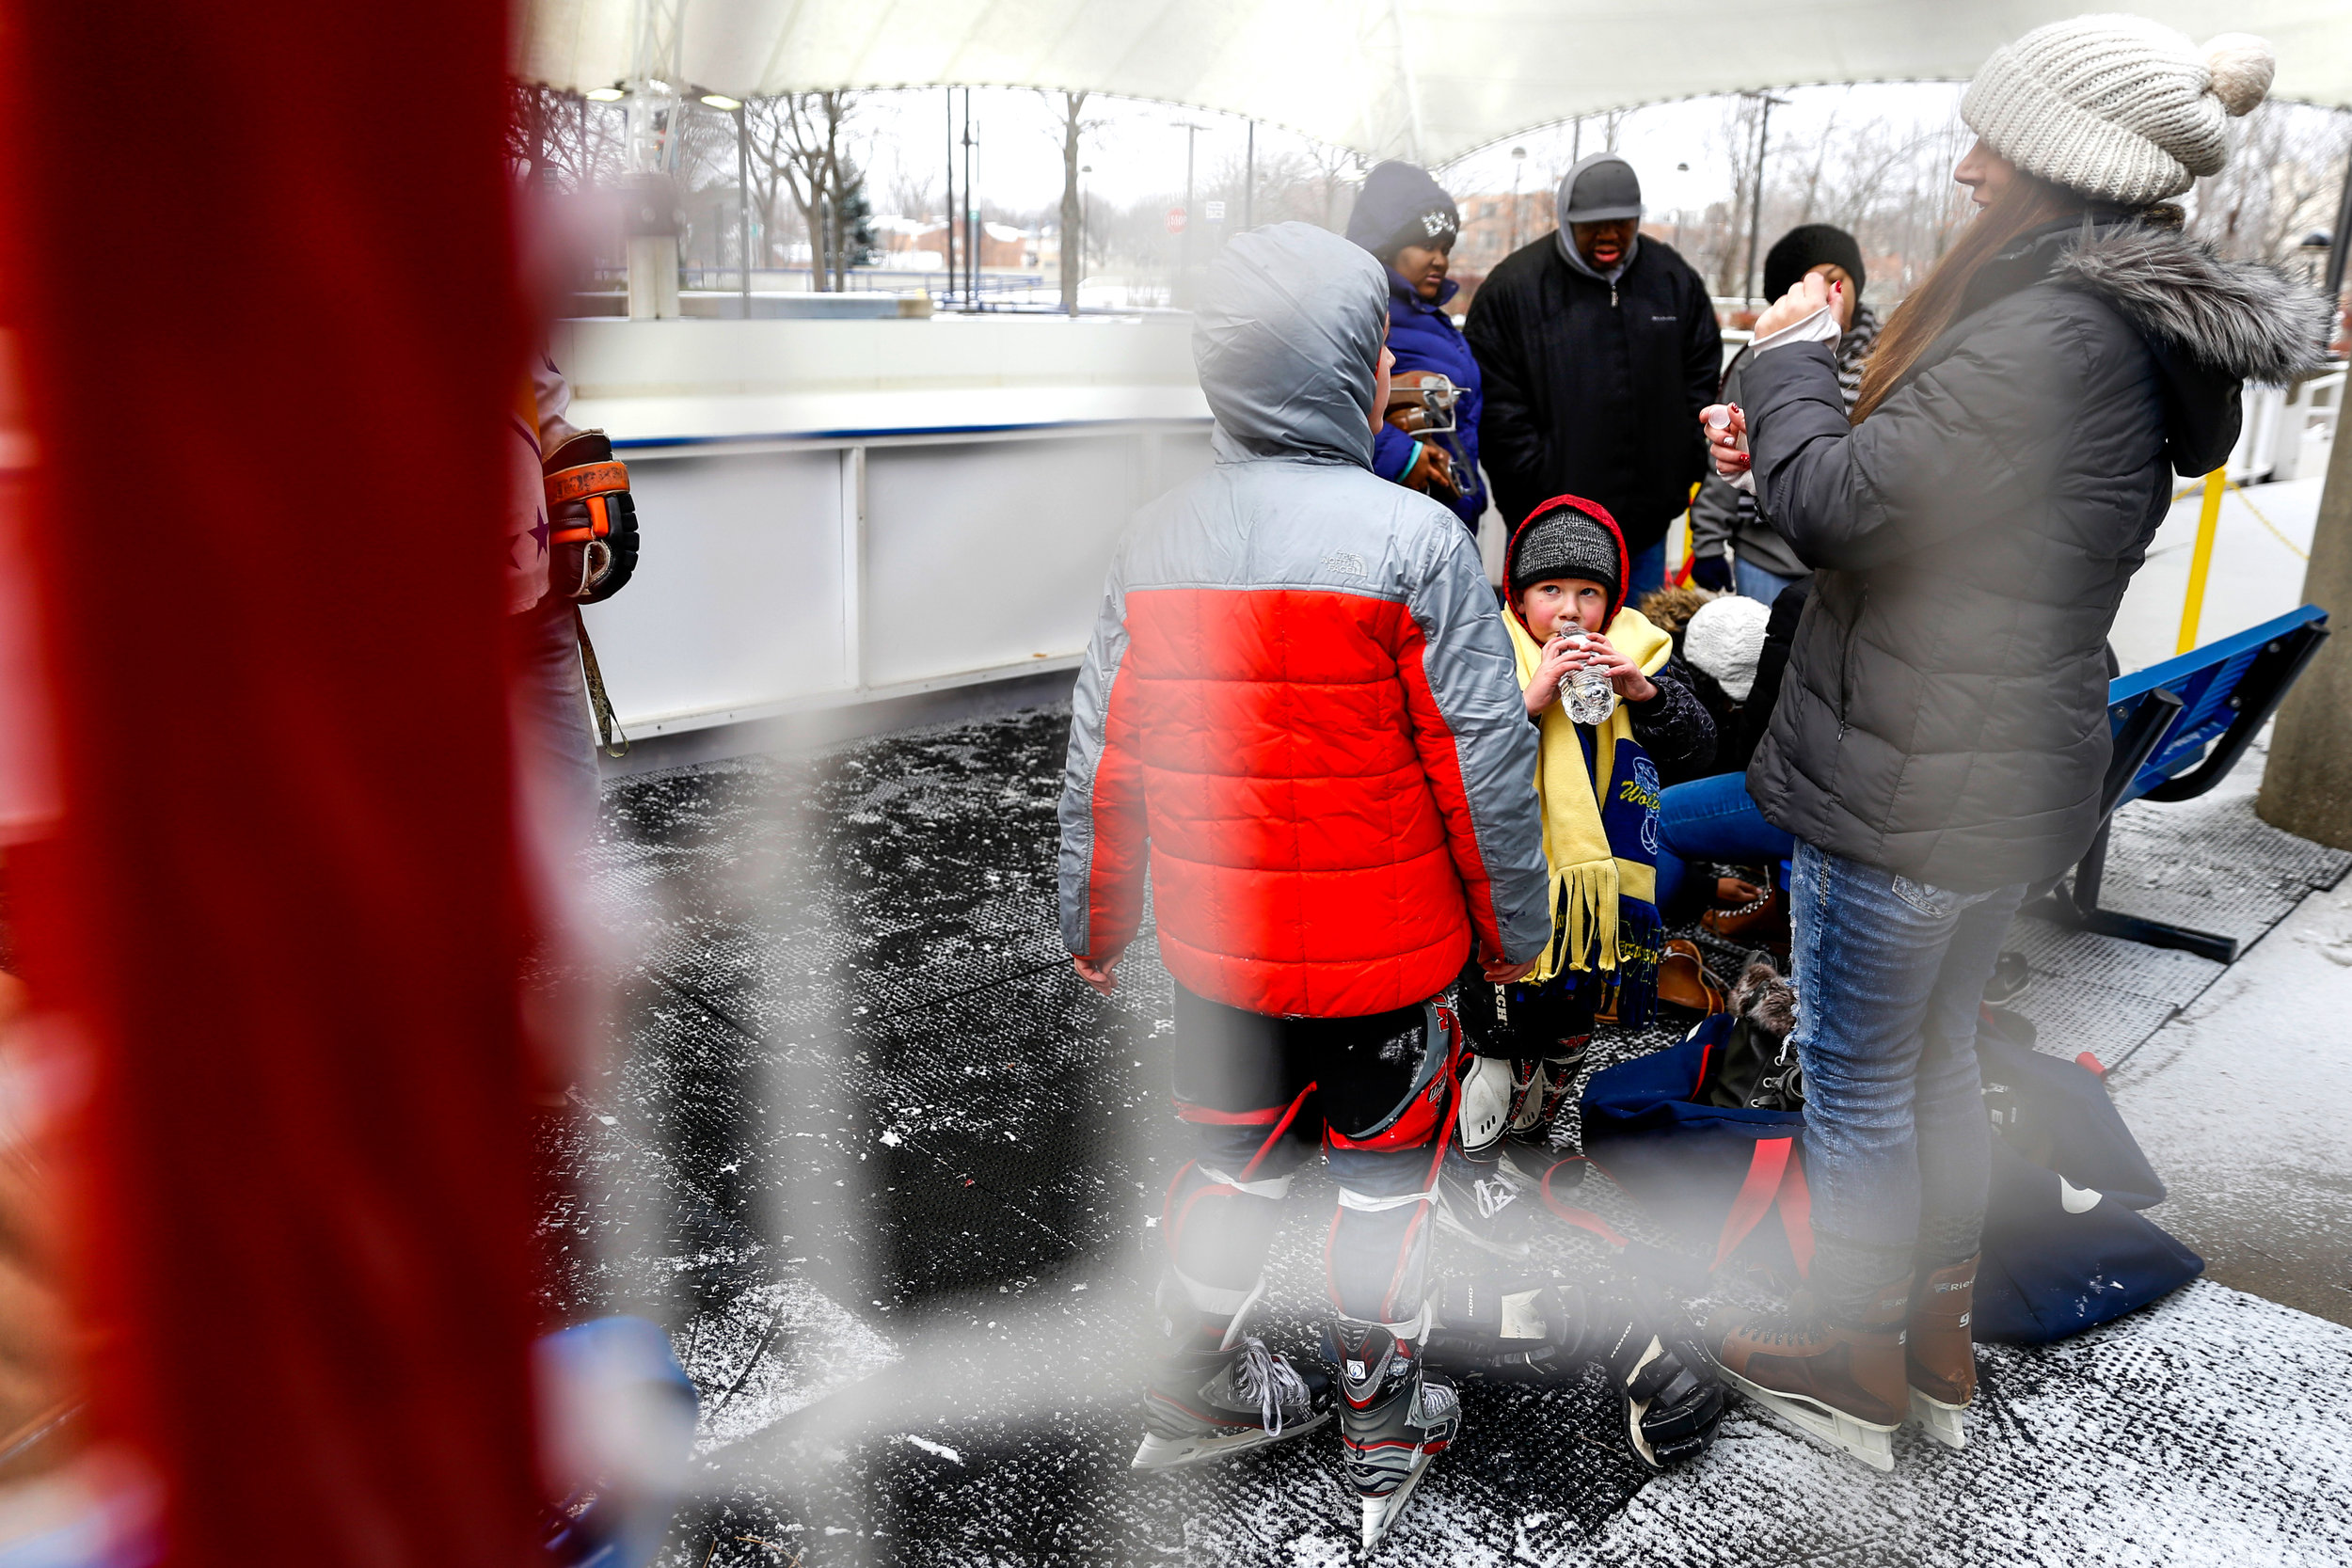 Eli Karrer, 4, of Flint, takes a break to drink water while ice skating on opening day of the free community open skate at UM-Flint Ice Rink on Saturday, Dec. 10, 2016 in downtown Flint. The rink is open Wednesdays, Fridays, Saturdays and Sundays weather permitting.